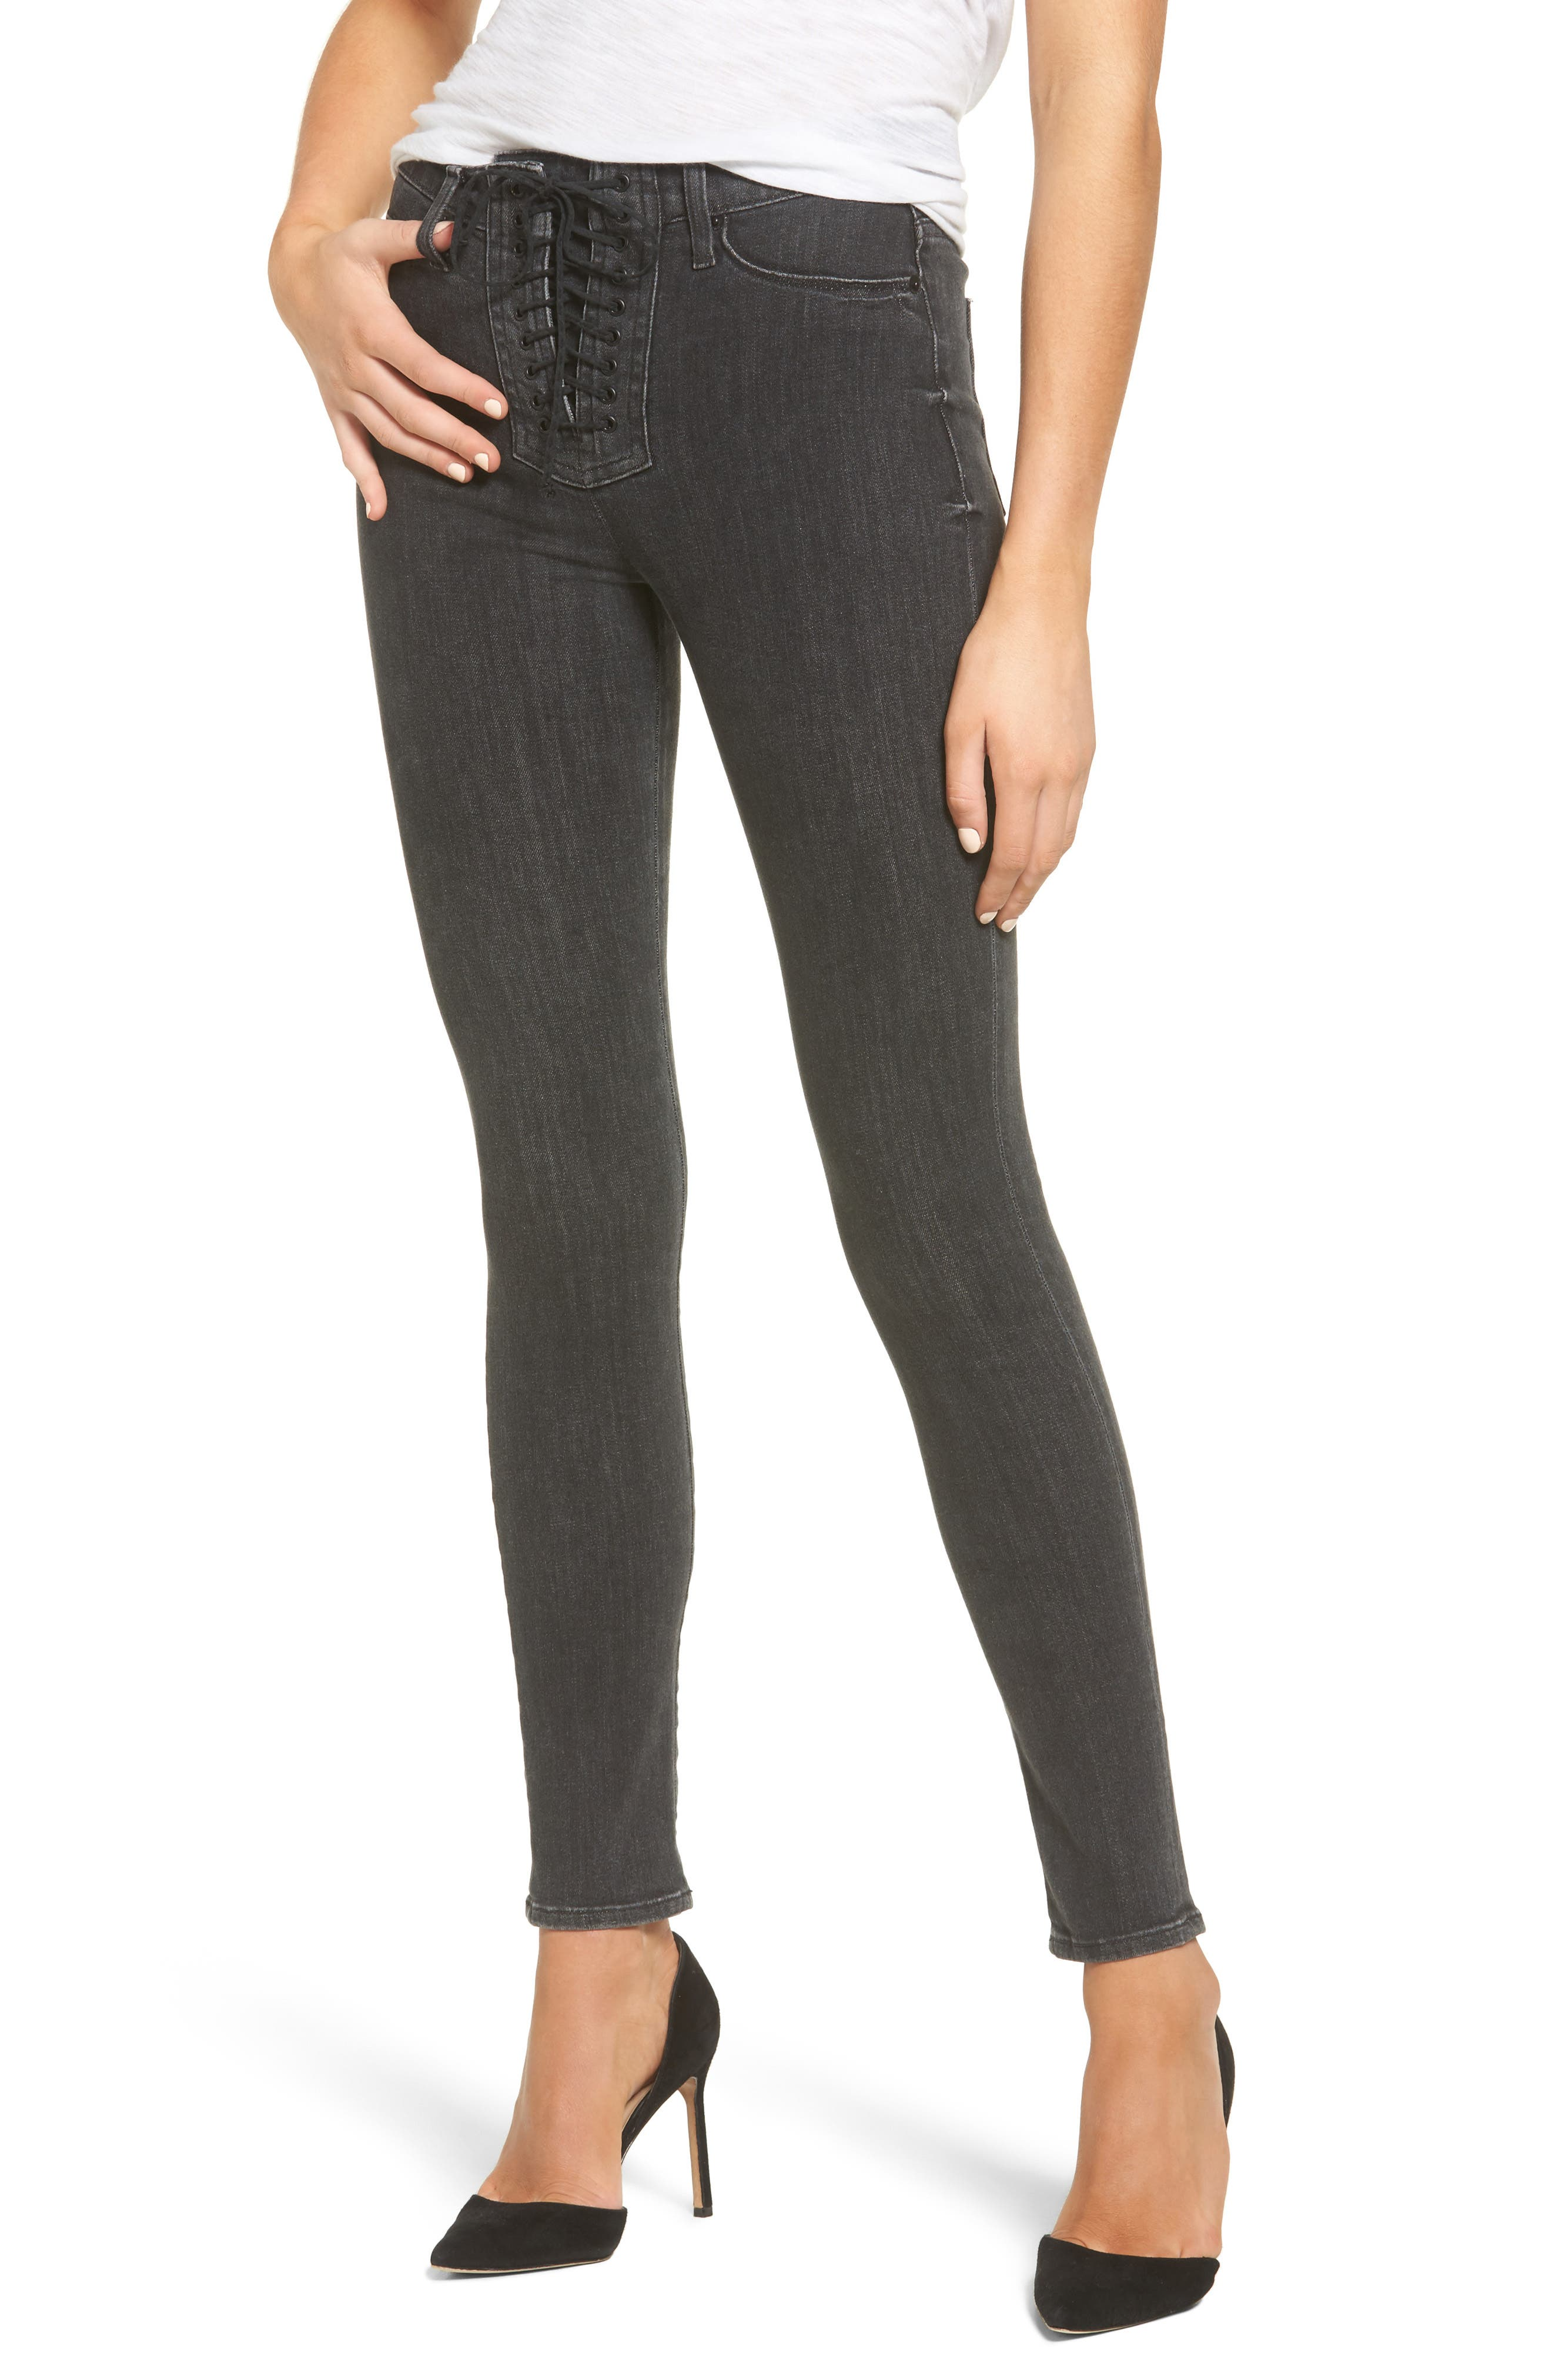 Bullocks High Waist Lace-Up Skinny Jeans,                         Main,                         color, Vacancy